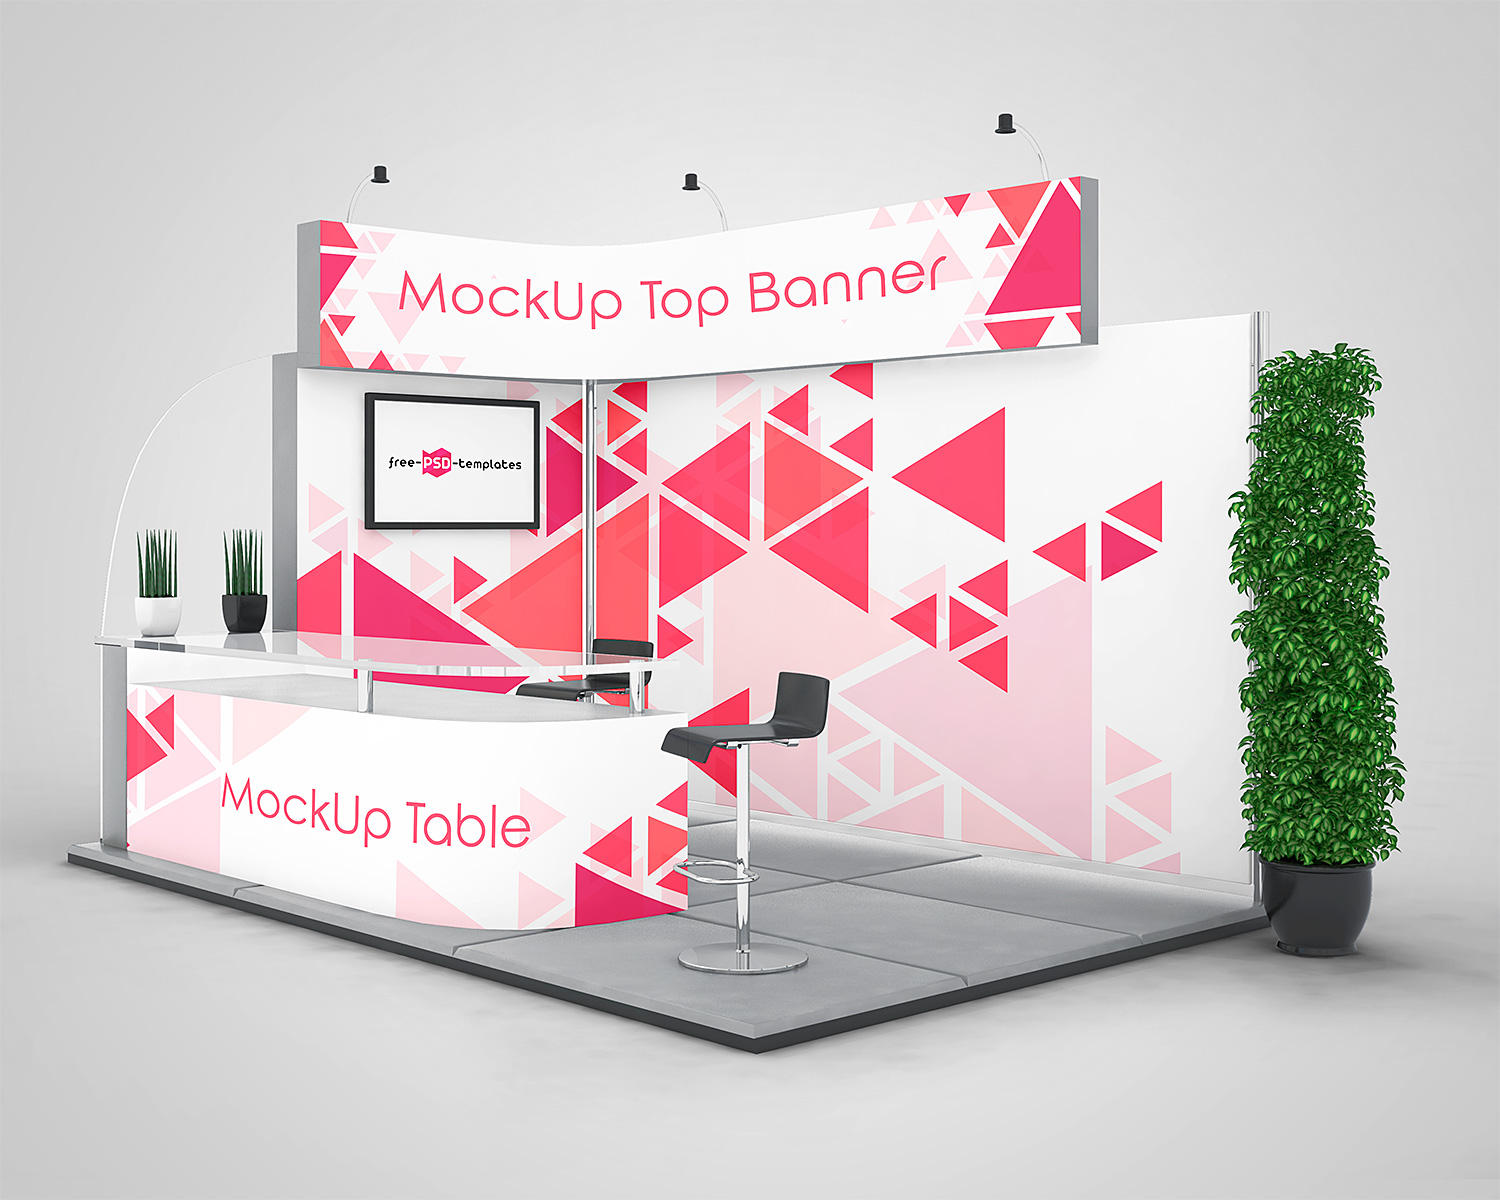 Exhibition Booth Free Download : Exhibition stand mock ups free in psd mockup